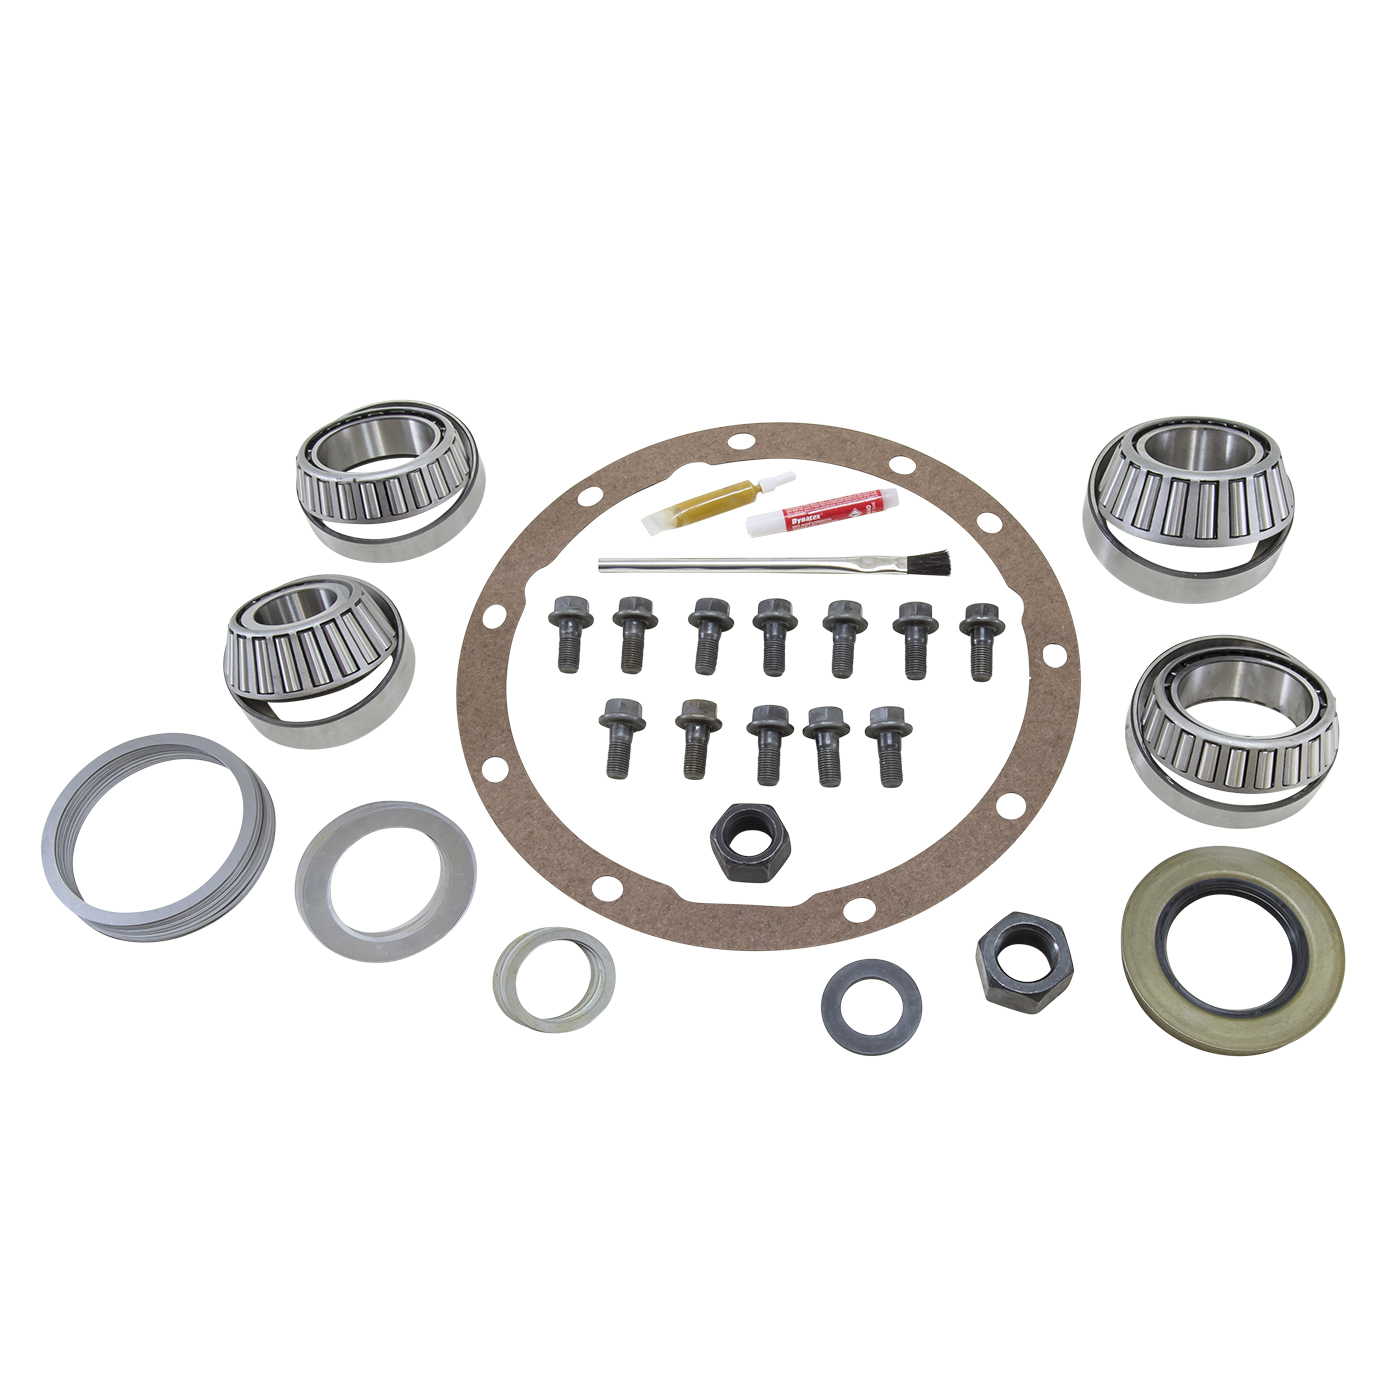 YK C8.75-A - Yukon Master Overhaul kit for Chrysler  8.75